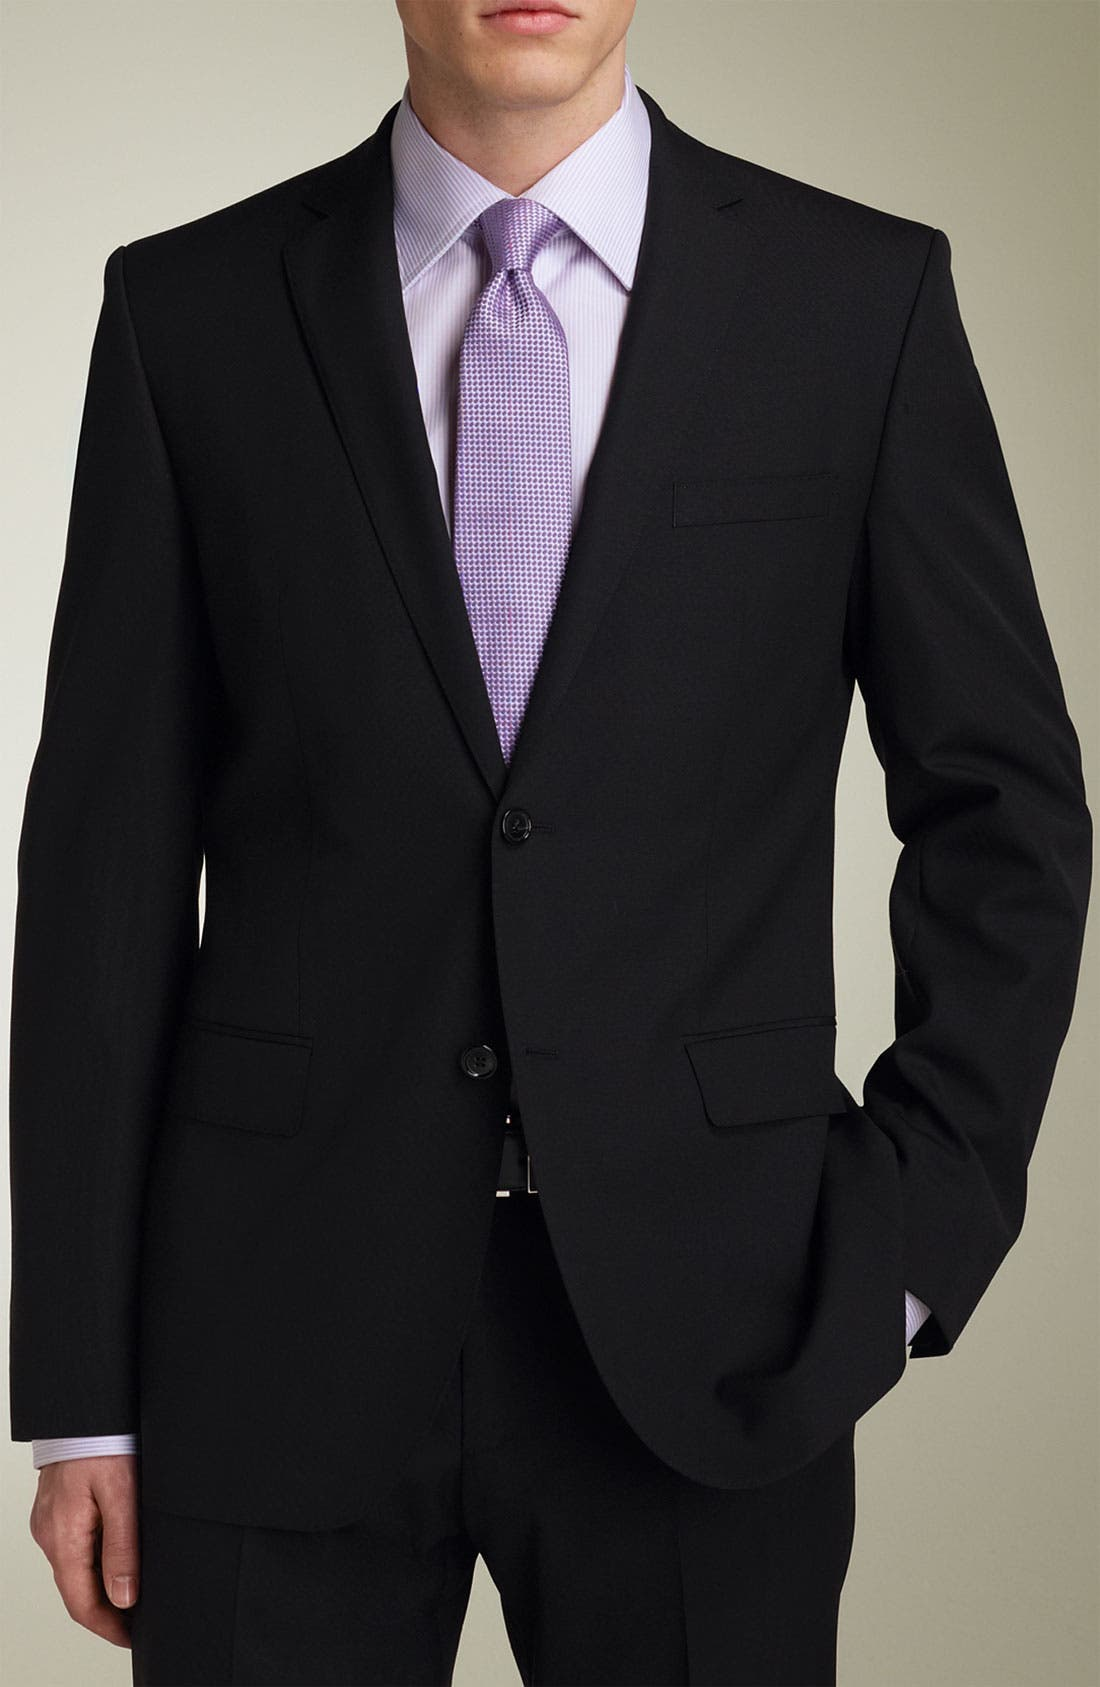 Alternate Image 1 Selected - BOSS 'Jam/Sharp' Trim Fit Black Virgin Wool Suit